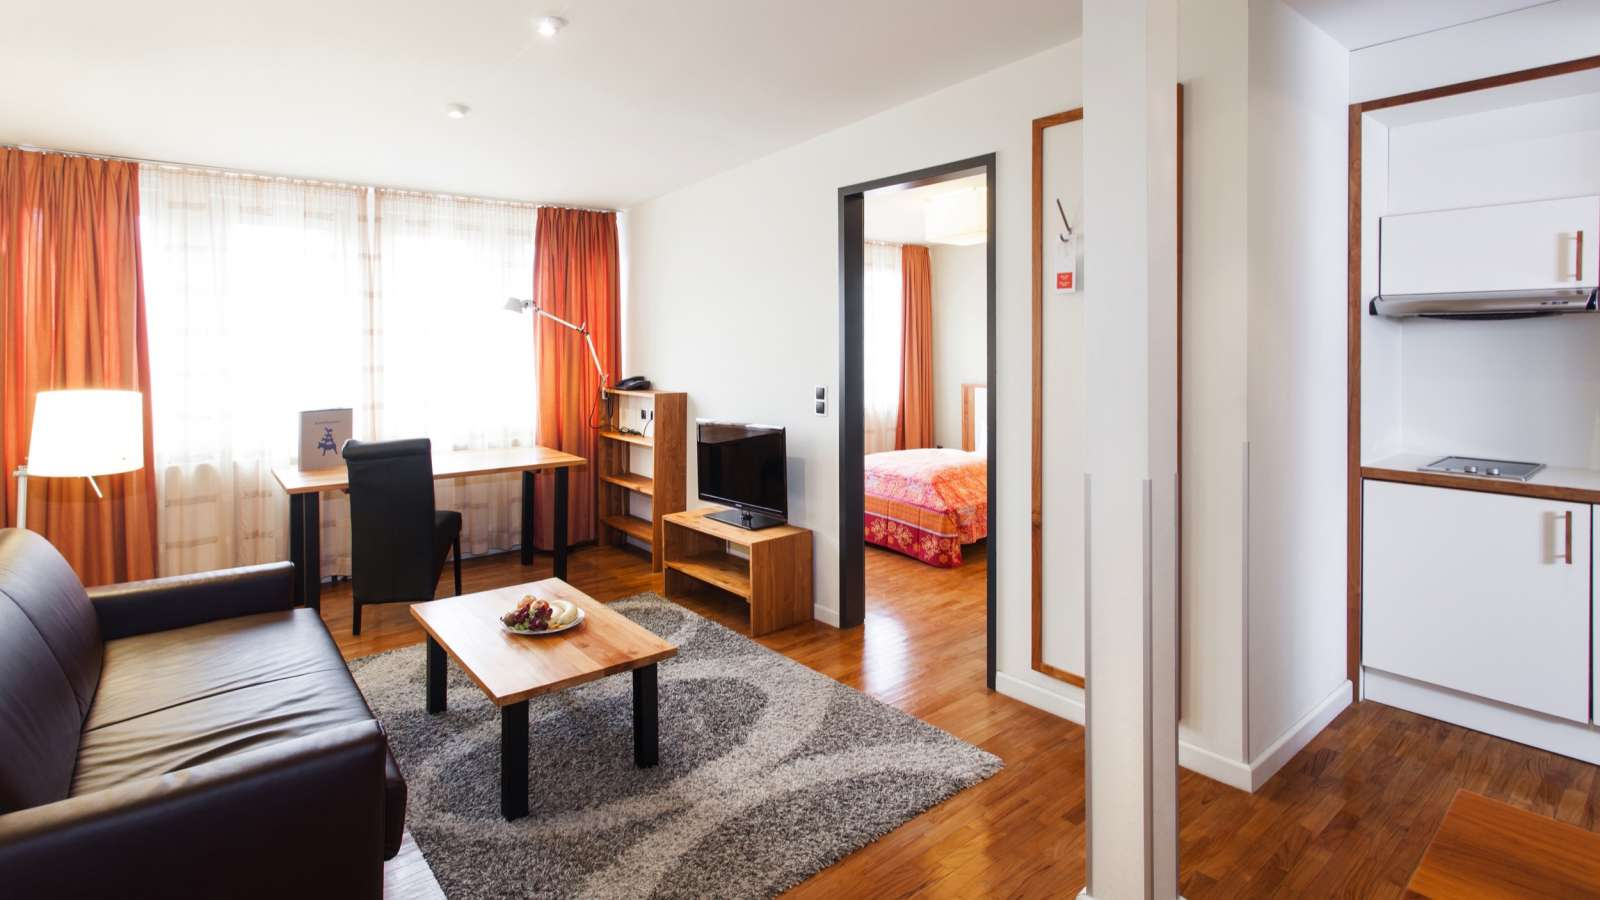 An apartment at Centro Hotel Domicil 31 in Bremen